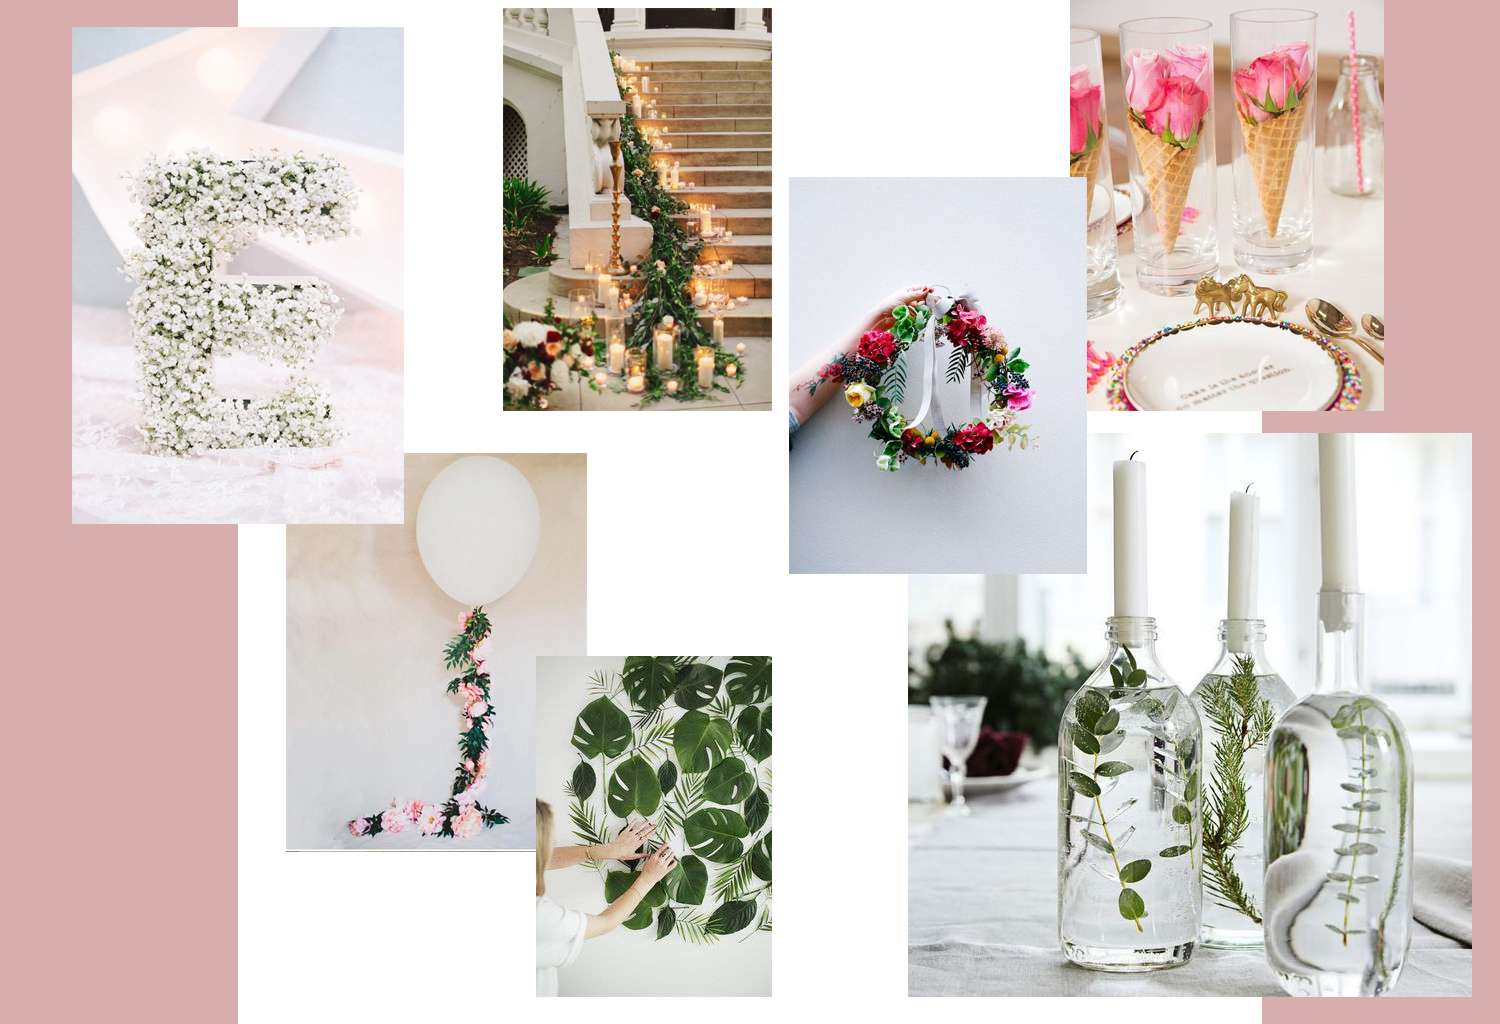 mariage tendance femme marque zwitter made in france